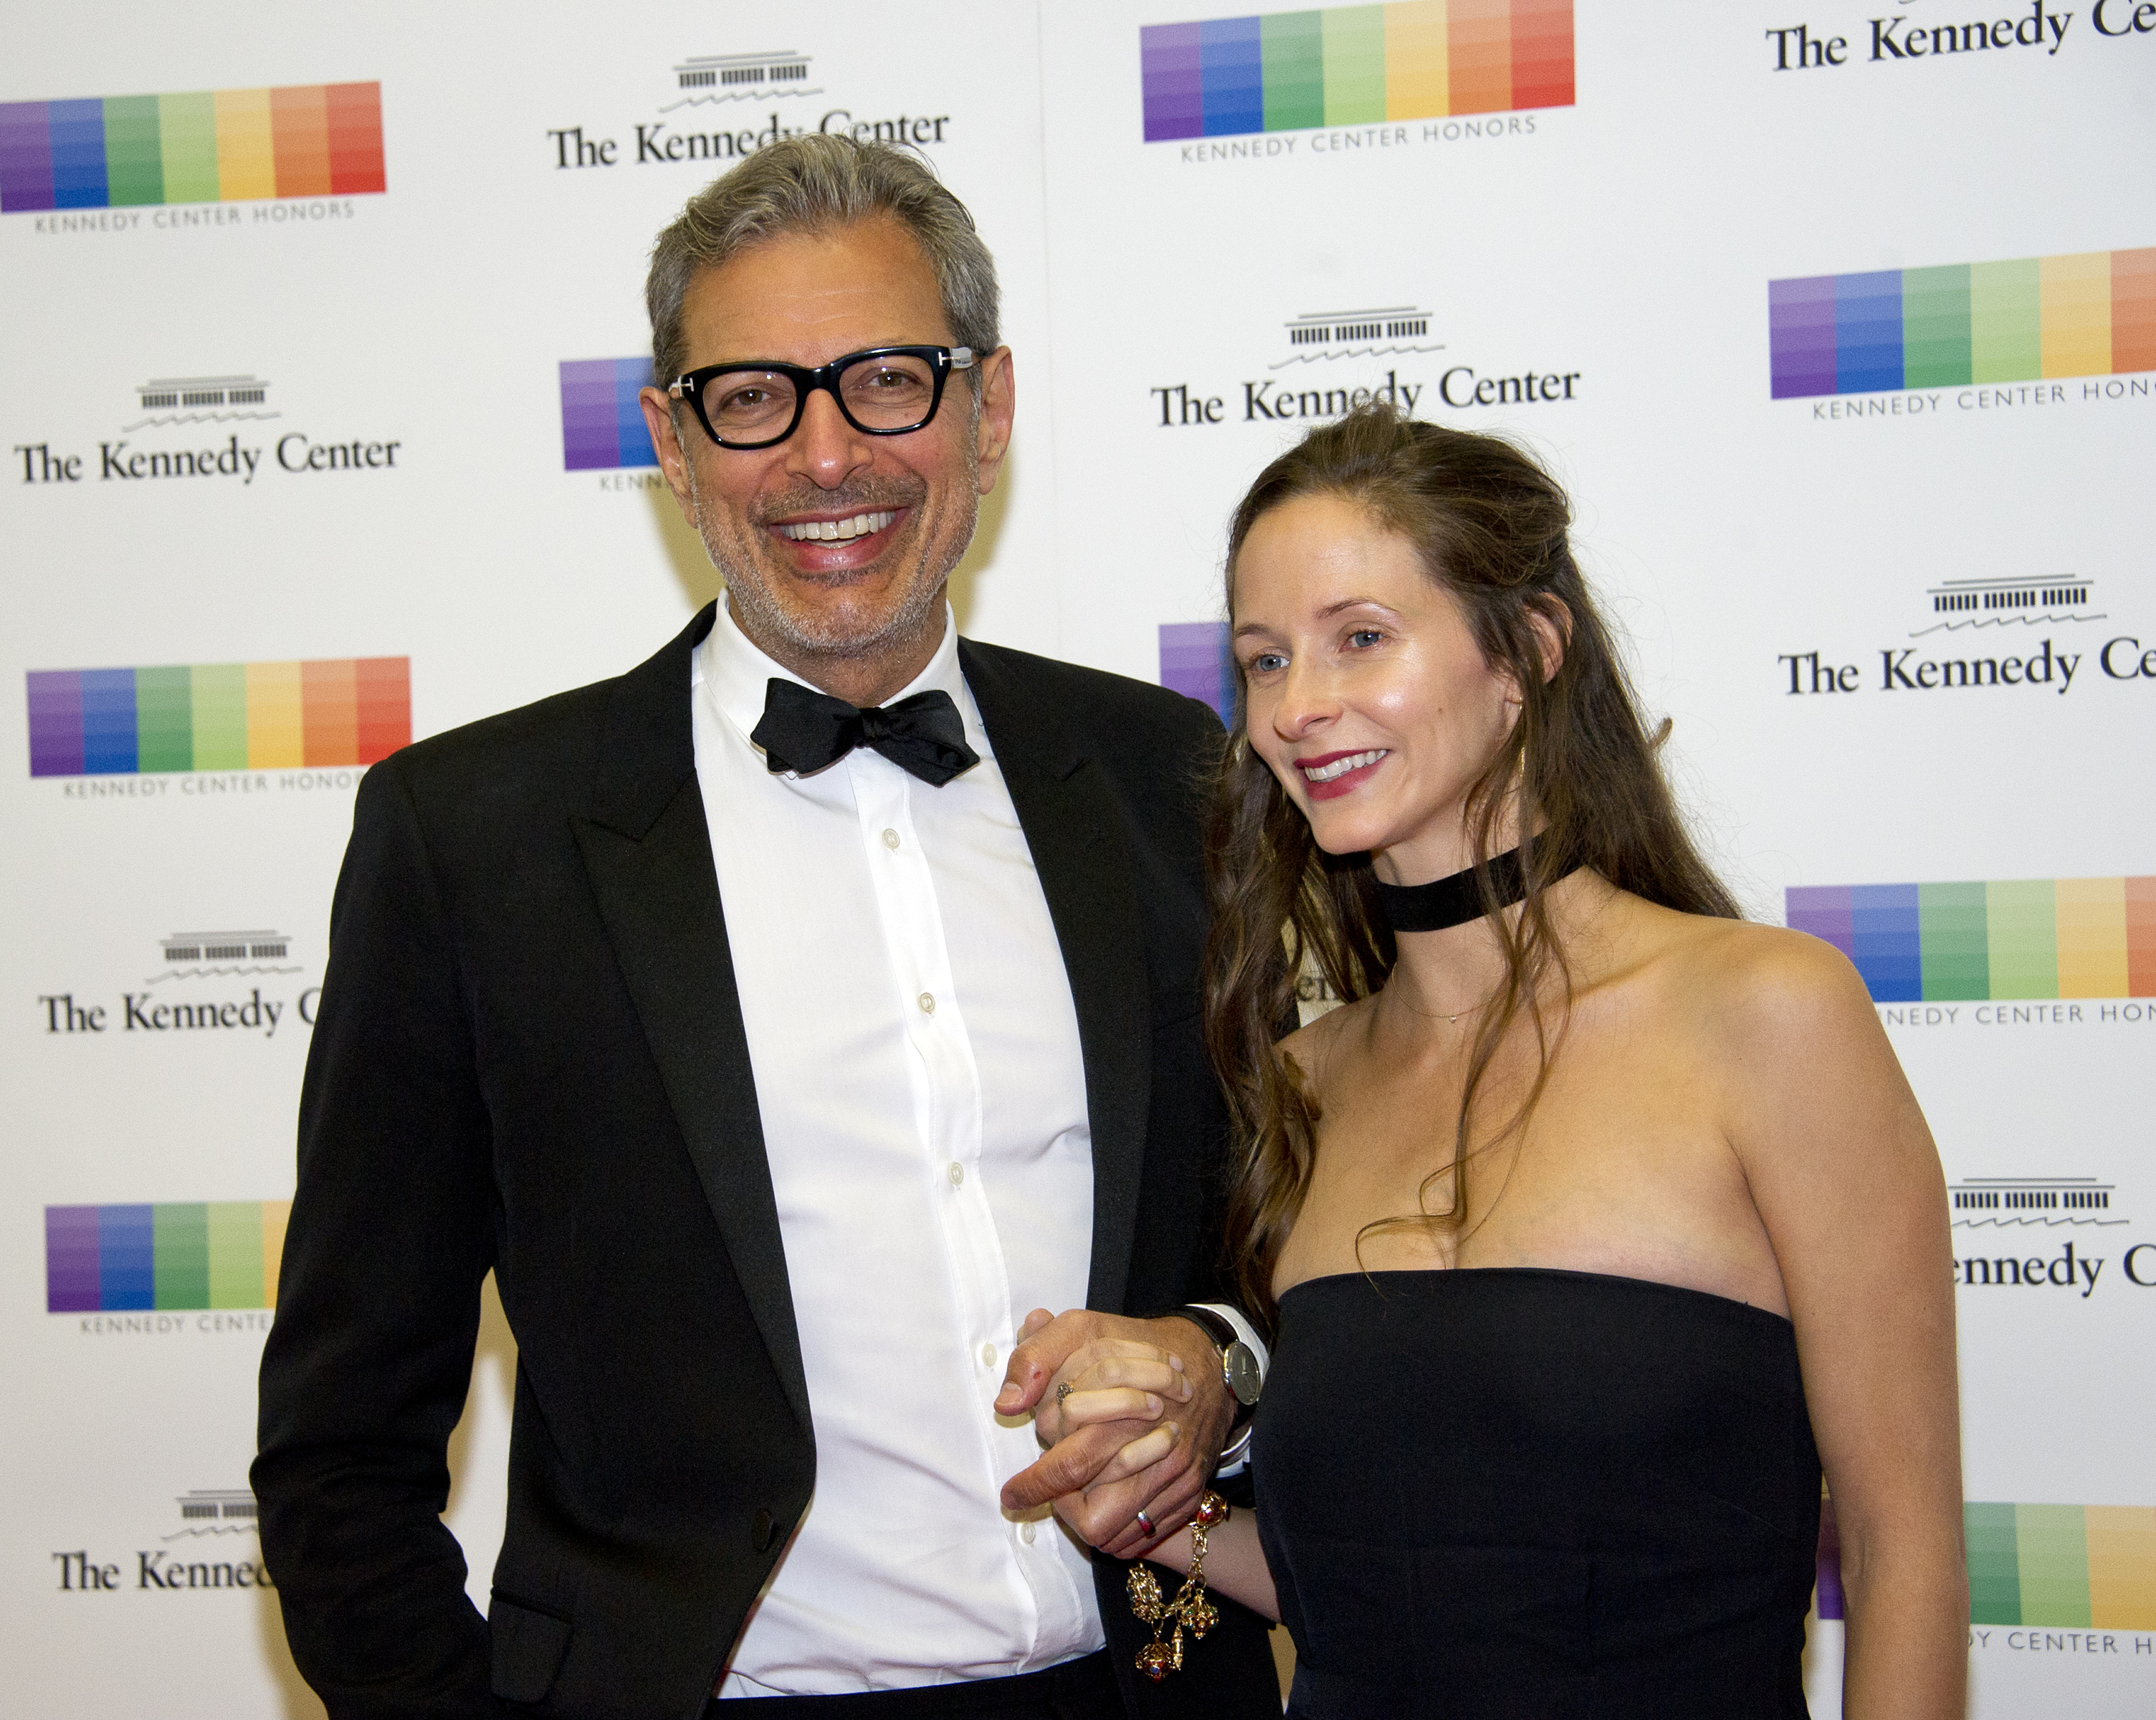 Jeff Goldblum welcomes second son with wife Emilie Livingston